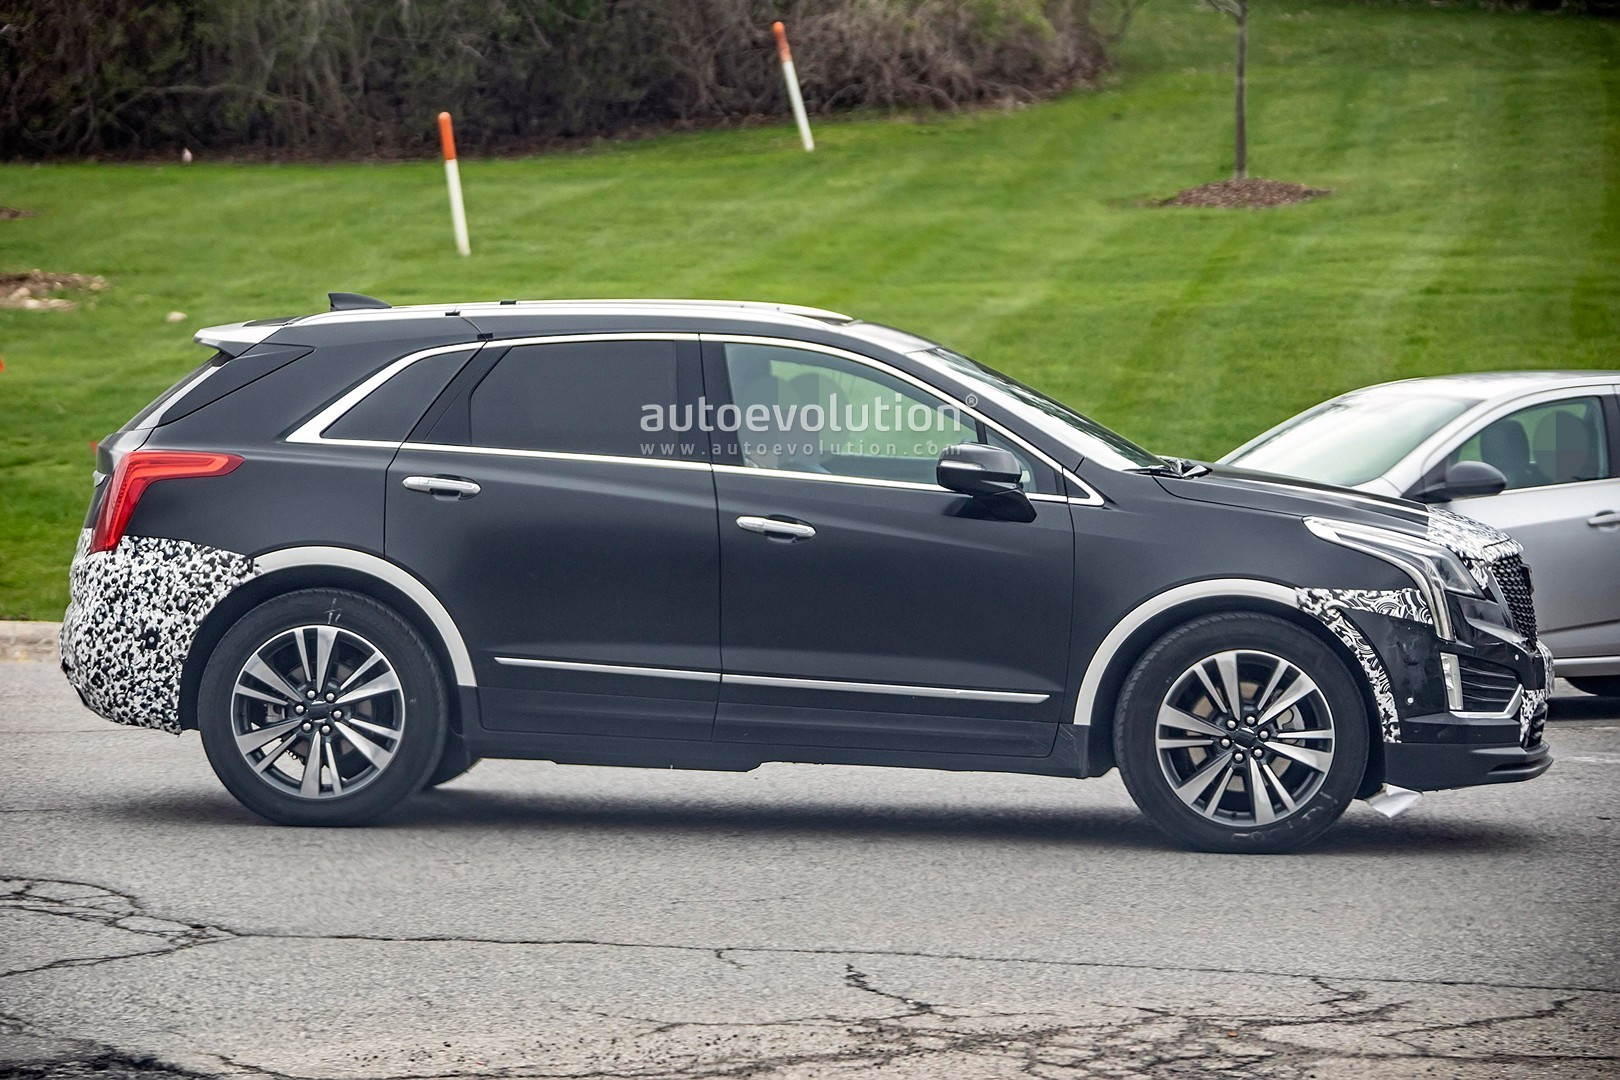 2020 Cadillac XT5: Refreshed, Changes, Release >> 2020 Cadillac Xt5 Spied With Very Subtle Refresh Autoevolution